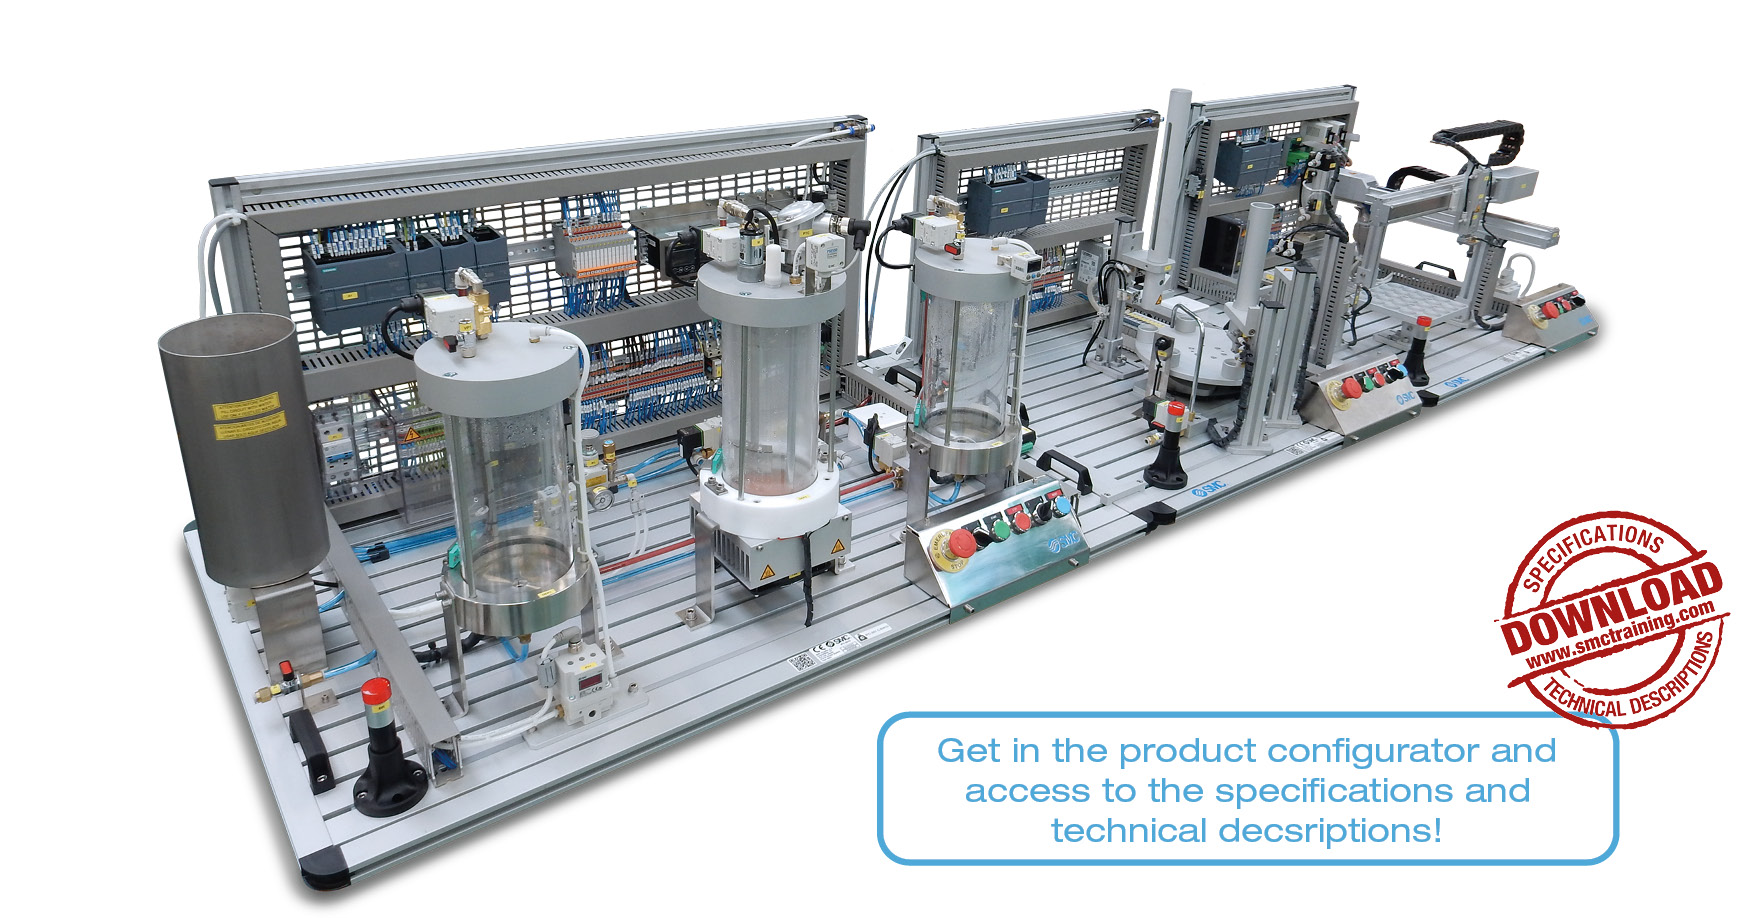 IPC-200 - A complete modular and flexible training system in the field of Industrial Process Control